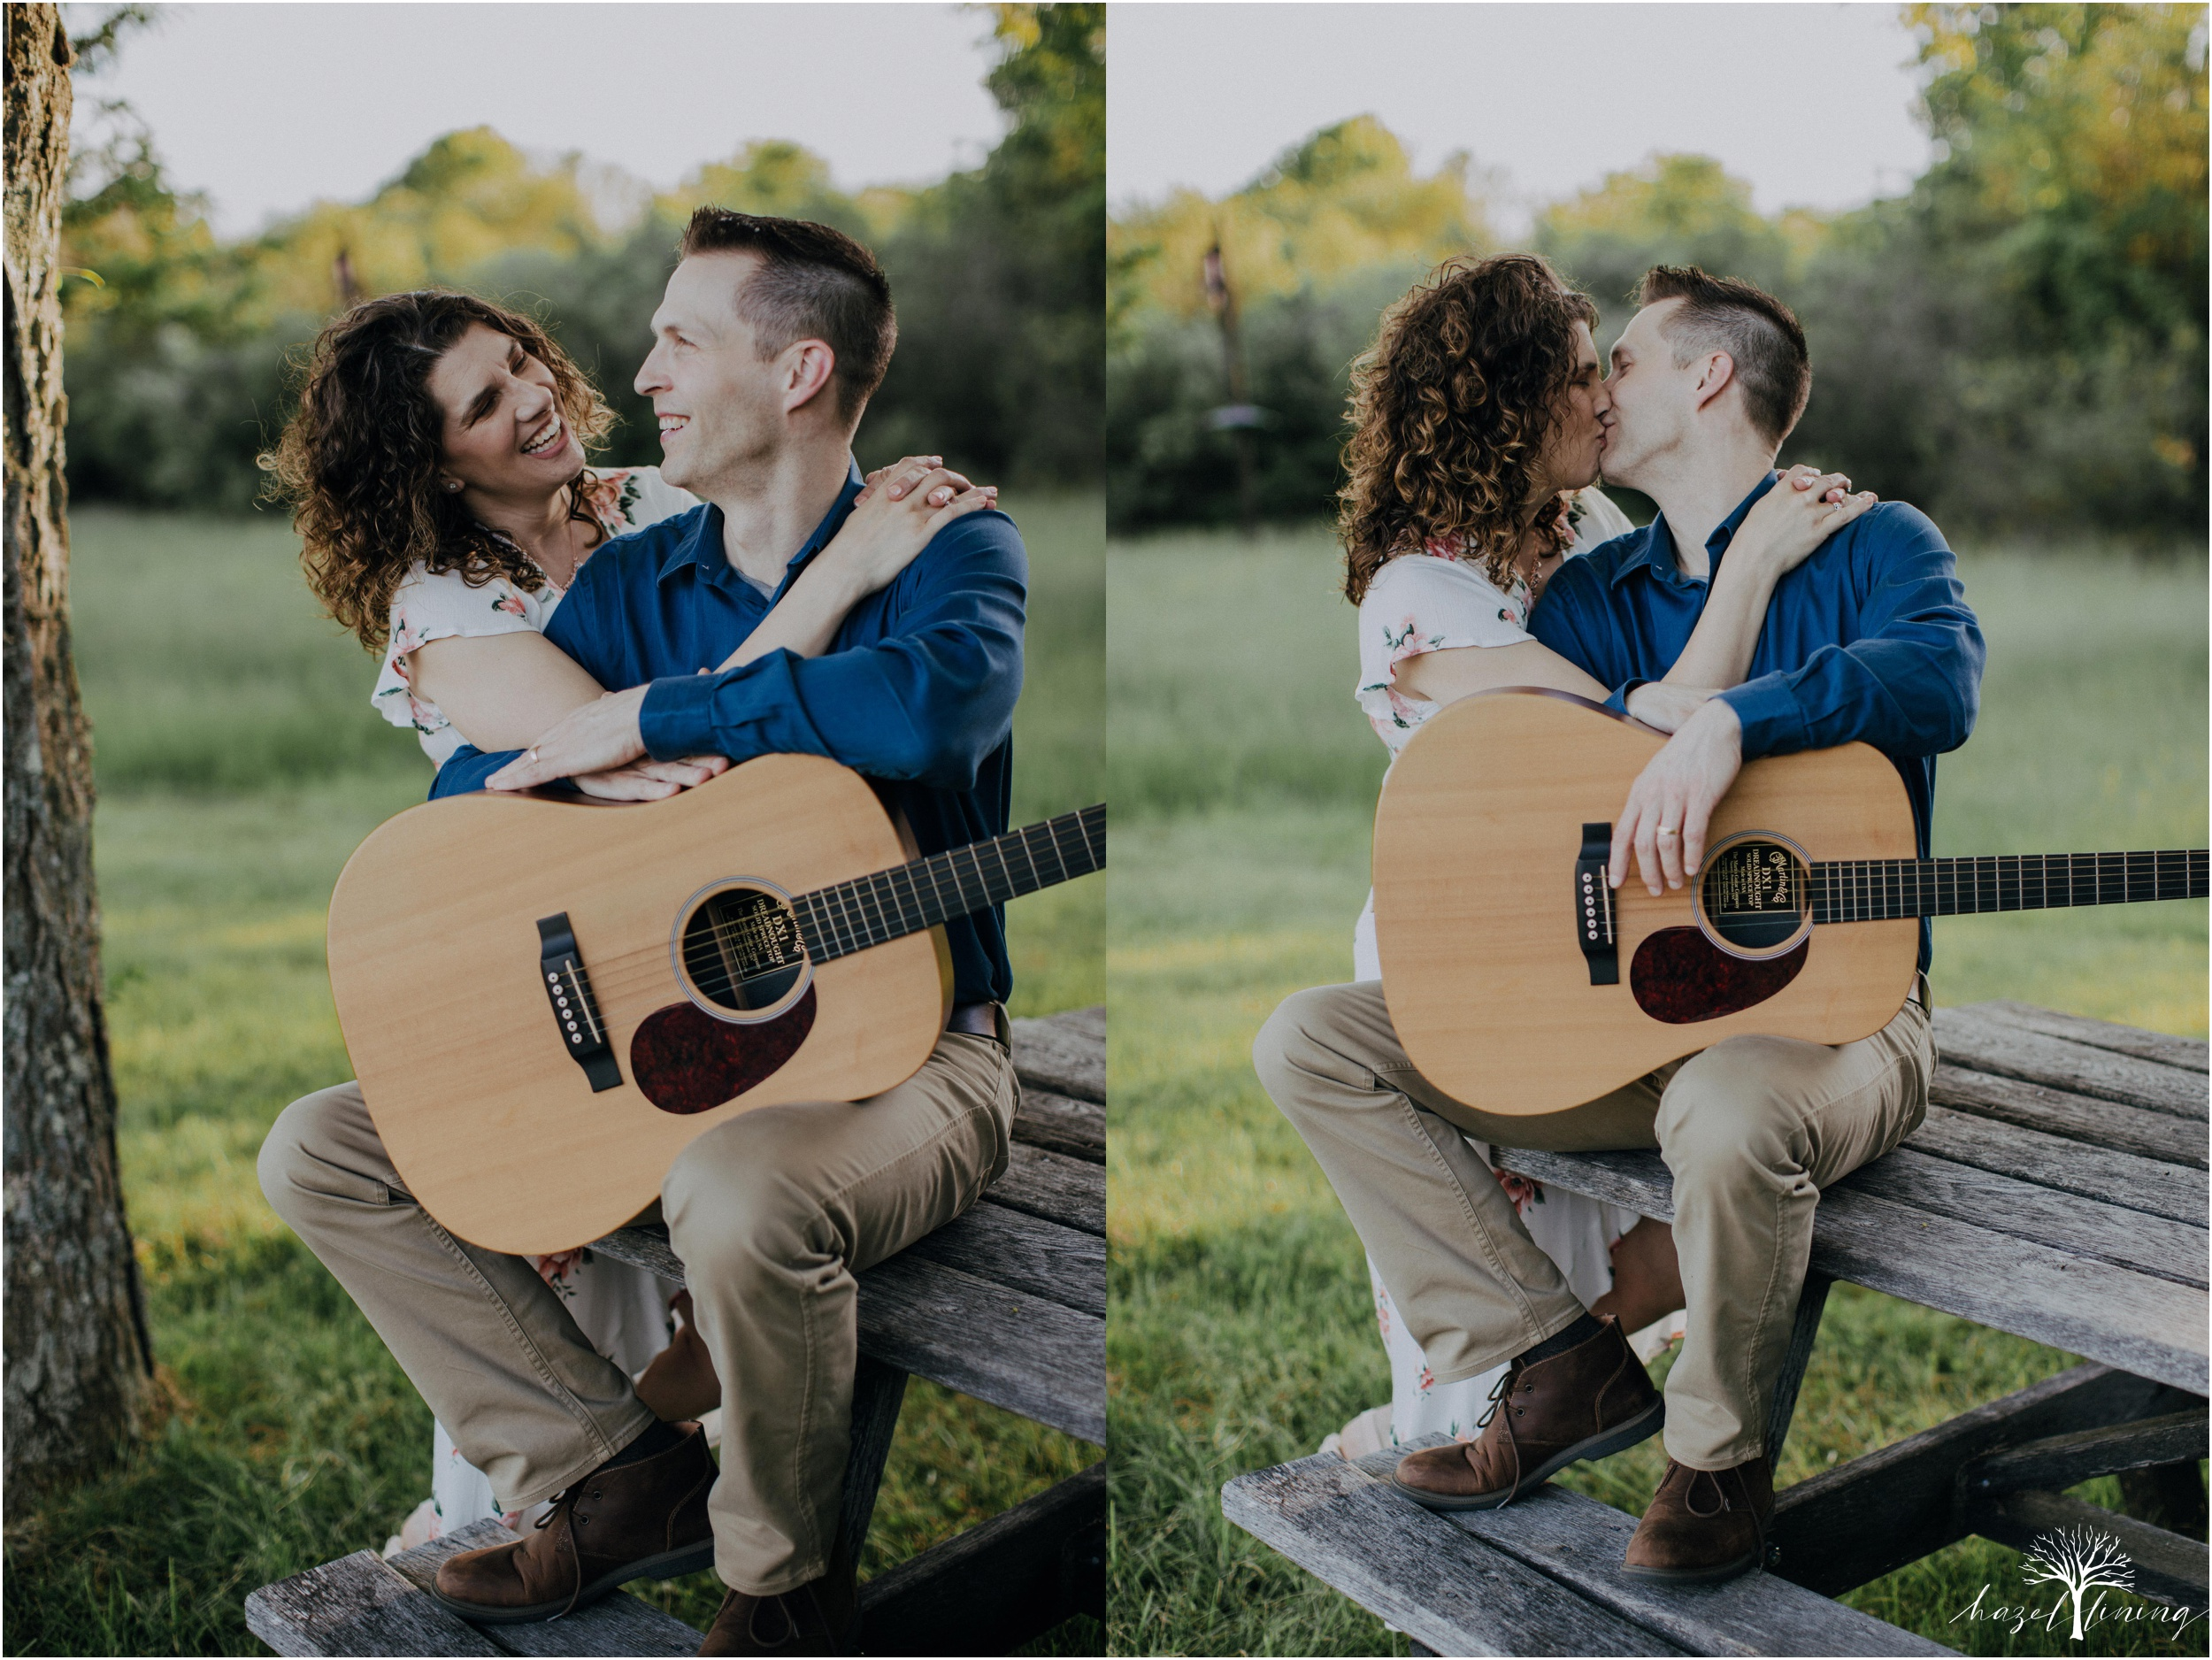 pete-rachelle-sawadski-20-year-anniversary-portrait-session-hazel-lining-photography-destination-elopement-wedding-engagement-photography_0273.jpg